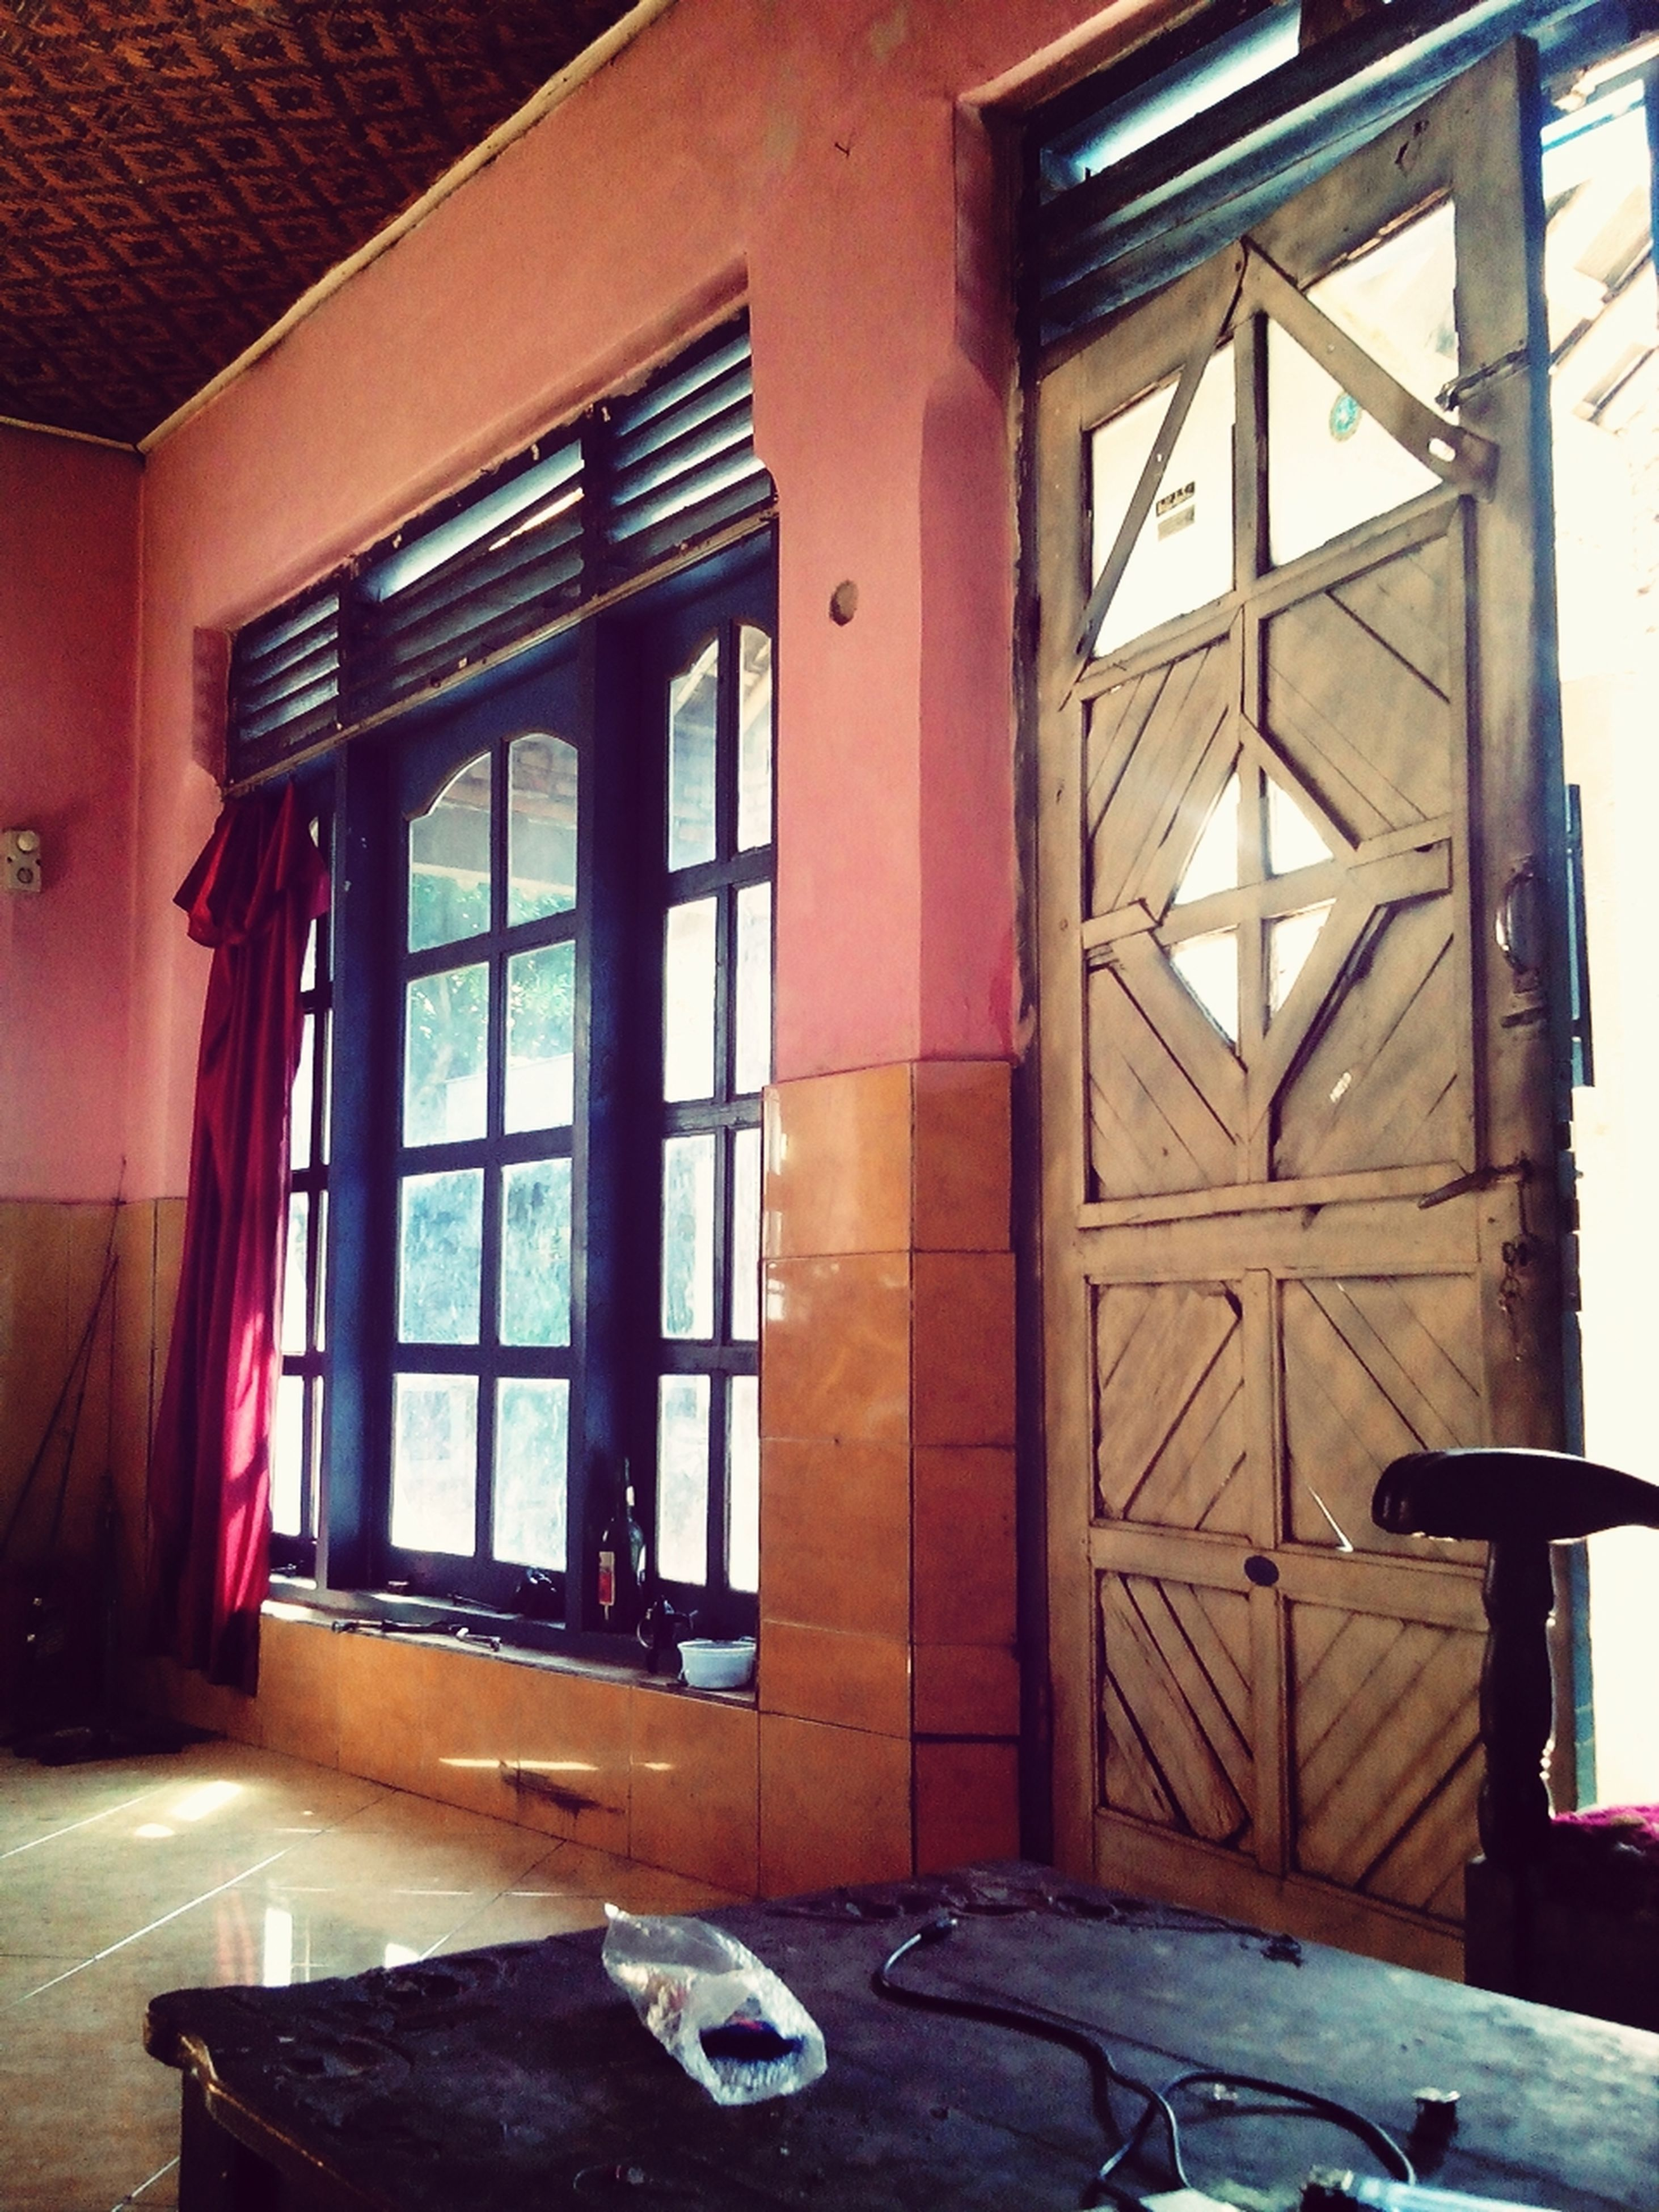 window, indoors, built structure, architecture, house, glass - material, door, abandoned, wood - material, building exterior, old, damaged, open, absence, closed, obsolete, day, table, no people, home interior